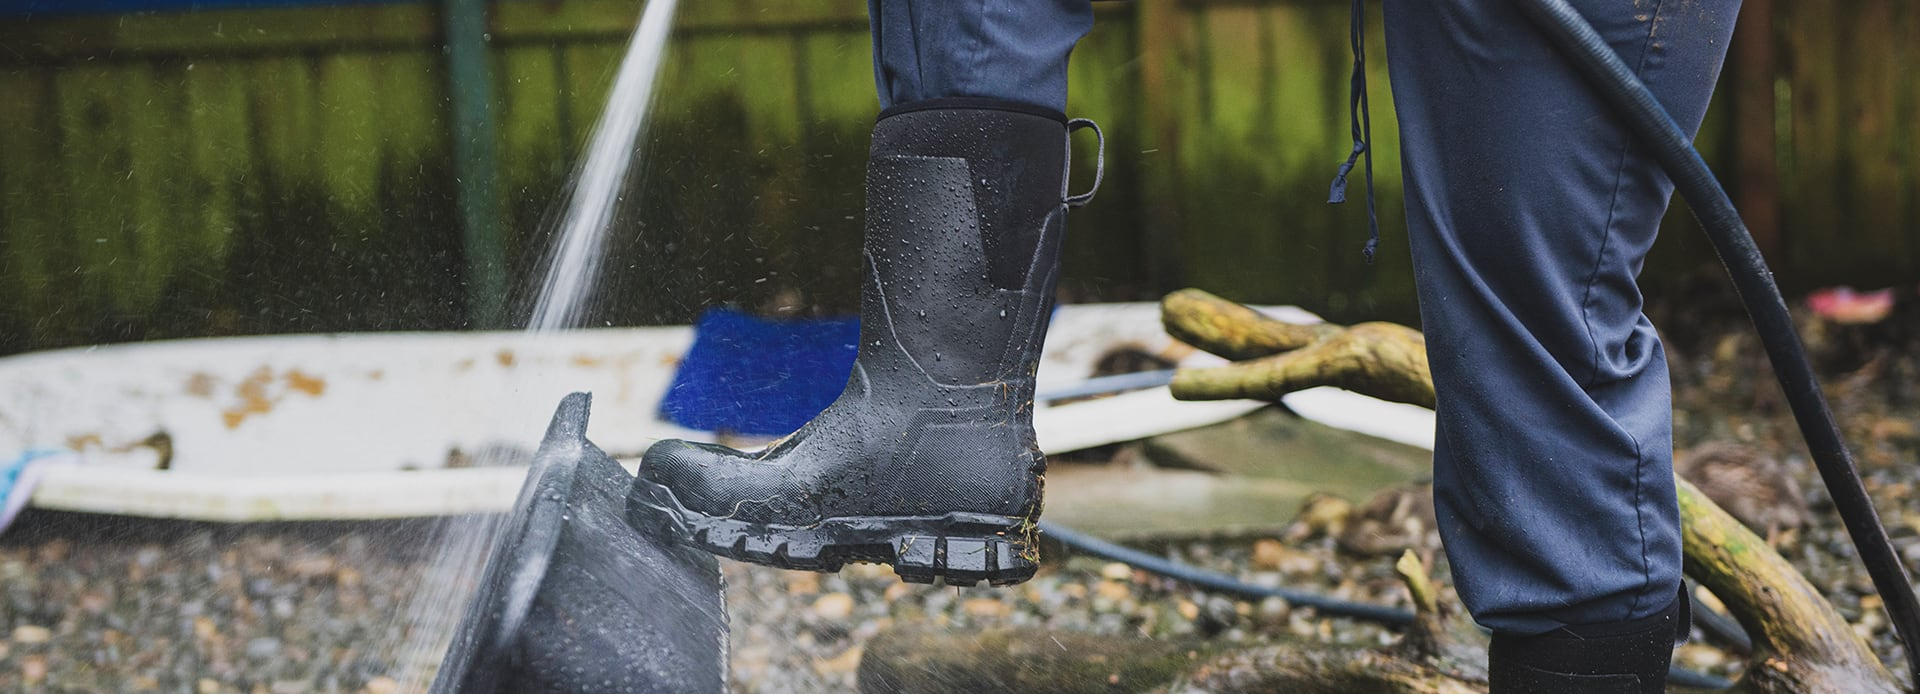 A person working in wet conditions, wearing CAT stormer boots